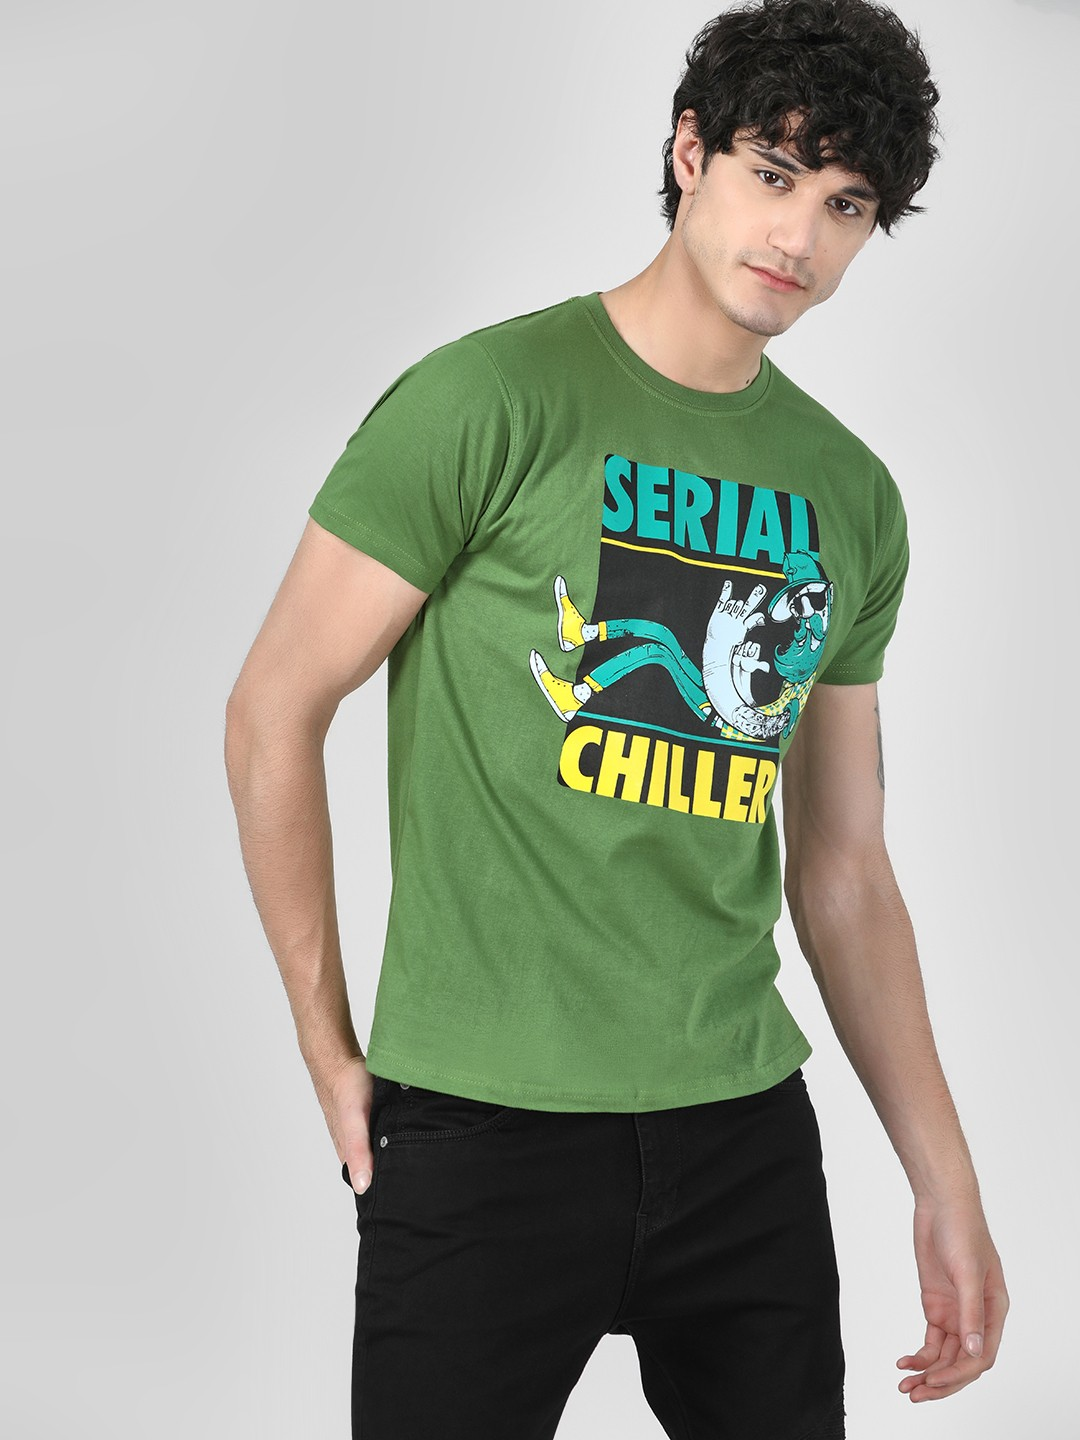 Tantra Olive Green Serial Chiller Slogan Printed T-Shirt 1